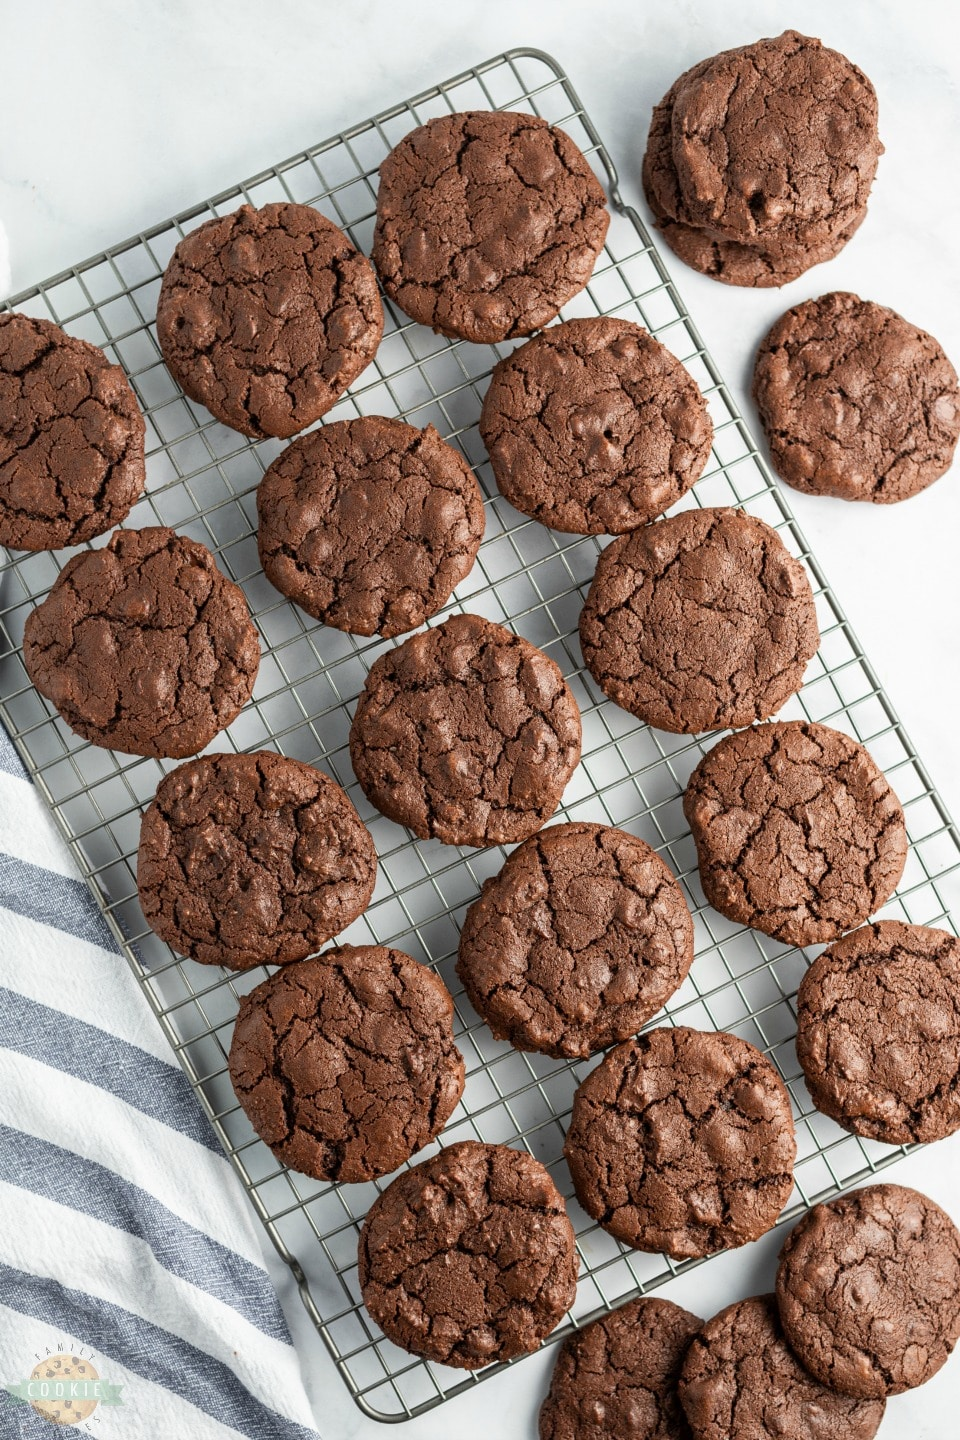 Double Chocolate Chip Cookies made with twice the chocolate for the ultimate chocolate chip cookie! Soft chewy cookies with fantastic chocolate flavor for those who LOVE chocolate!